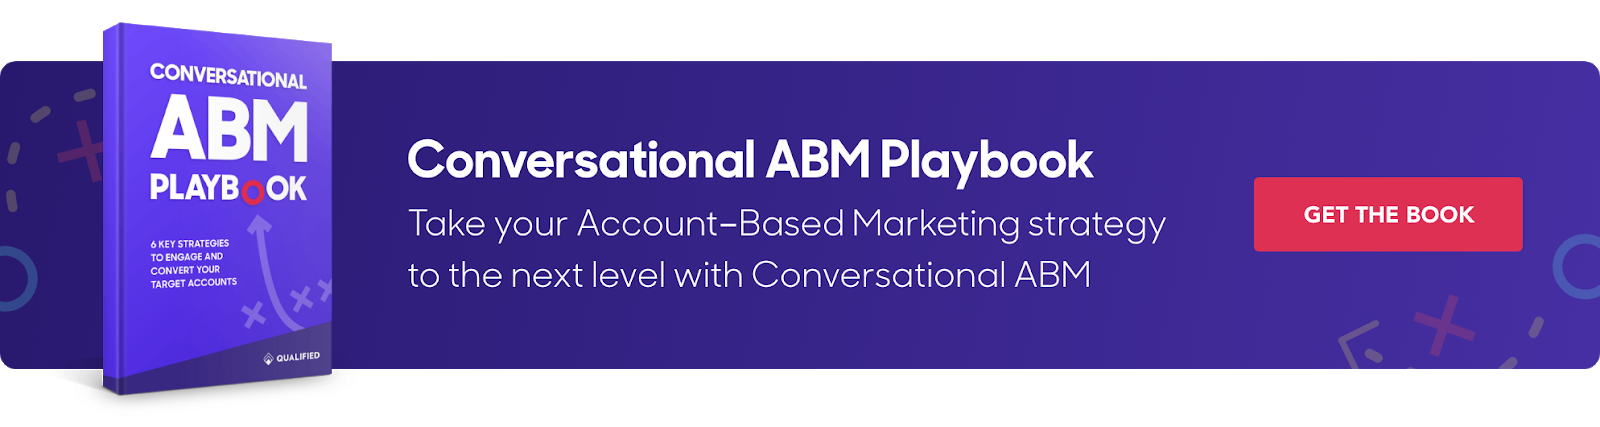 Qualified's Conversational Marketing ABM Playbook unlocks the tools you need to take your account-based marketing strategy to the next level!